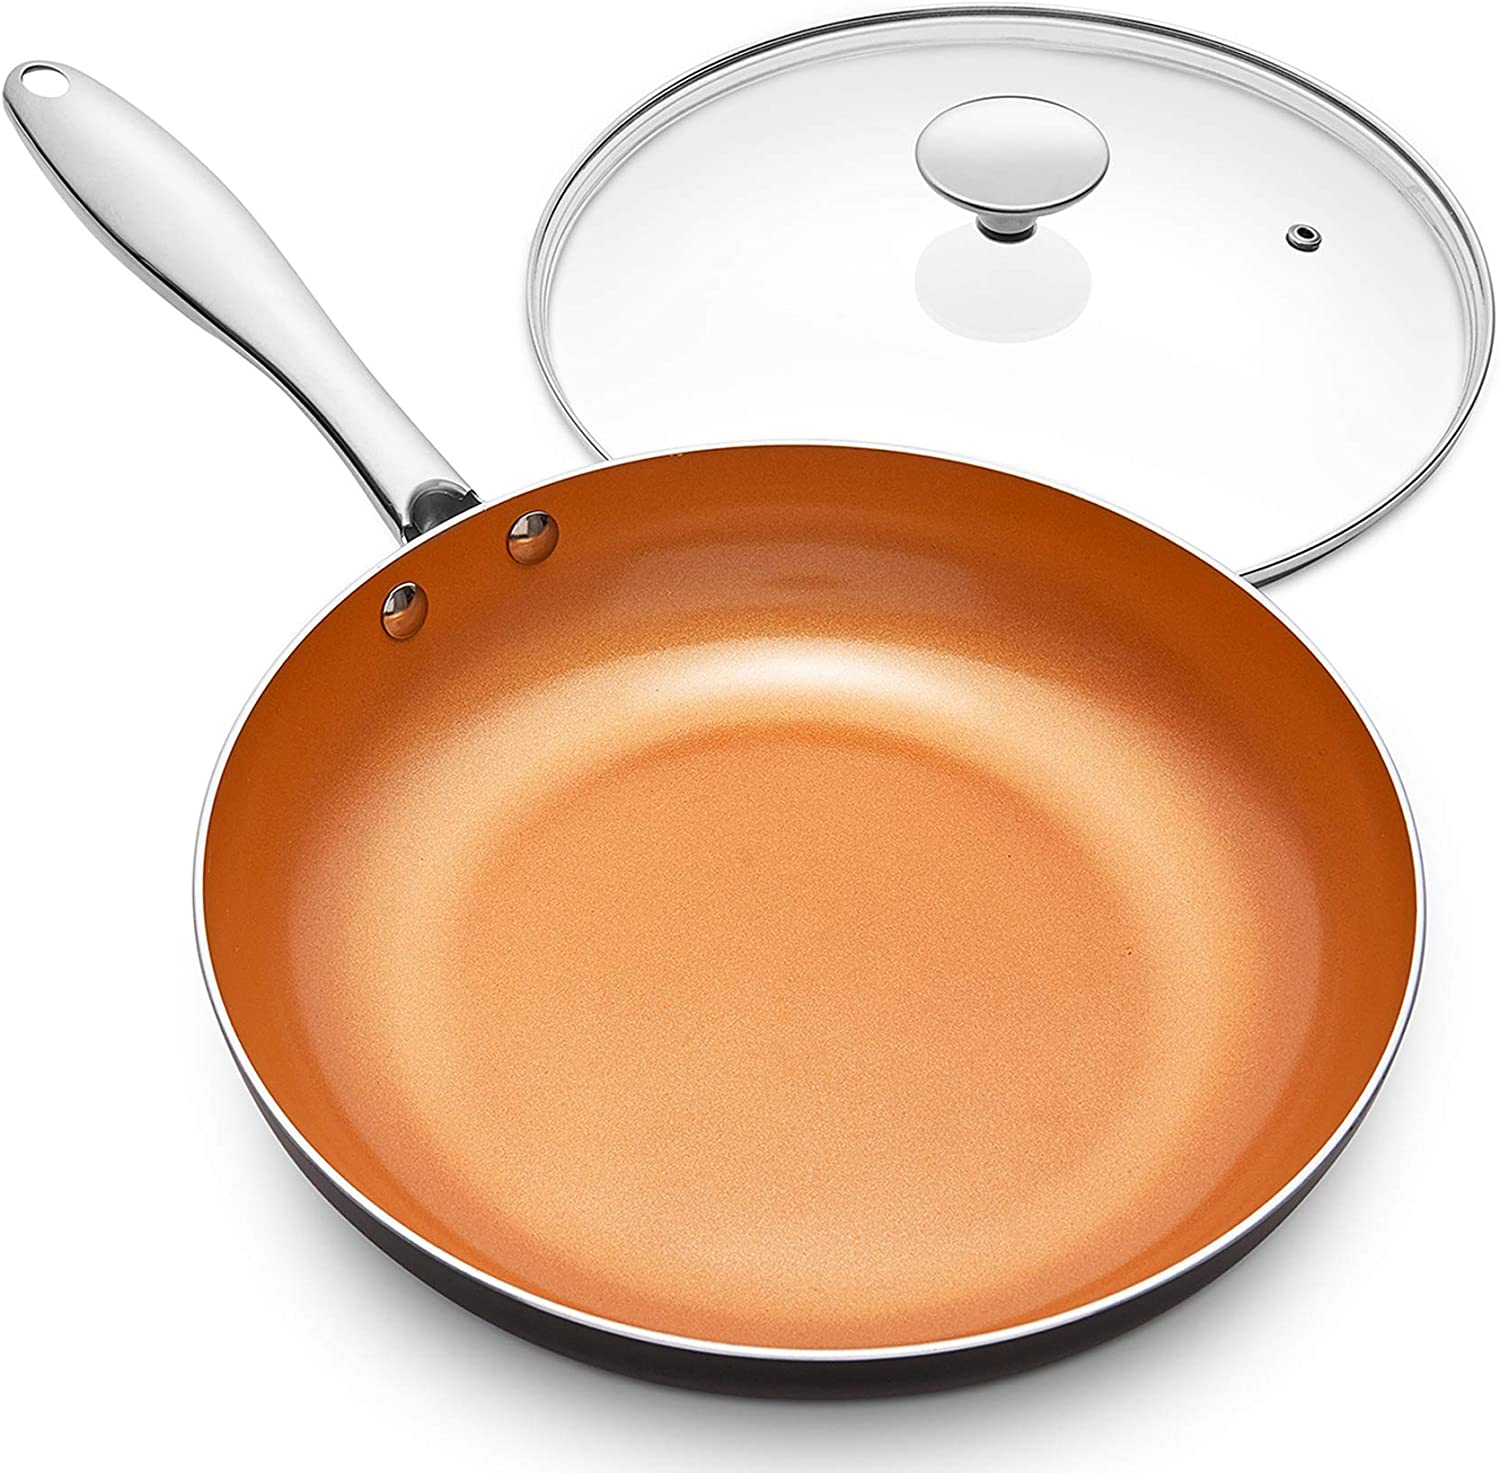 MICHELANGELO Frying Pan With Lid Non-stick 8 Inch Pan